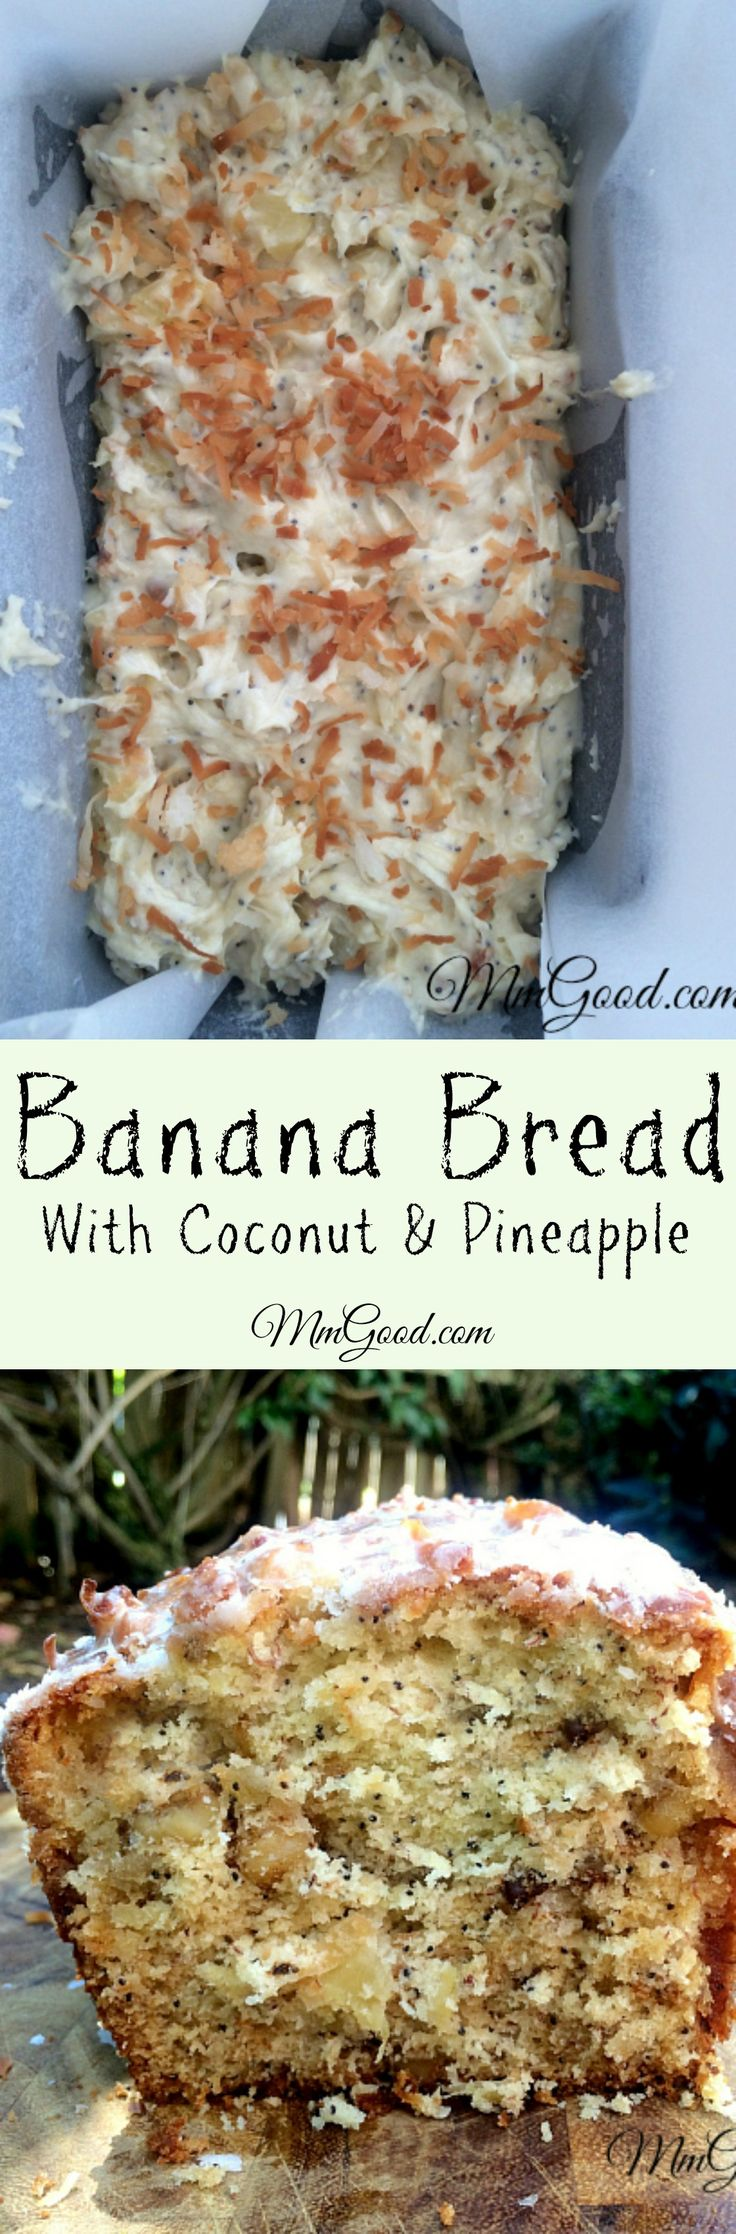 A great banana bread recipe that has no oil, instead I used crushed pineapple, added toasted coconut and walnuts. Make the glaze and you have yourself an amazing banana bread recipe! | www.MmGood.com